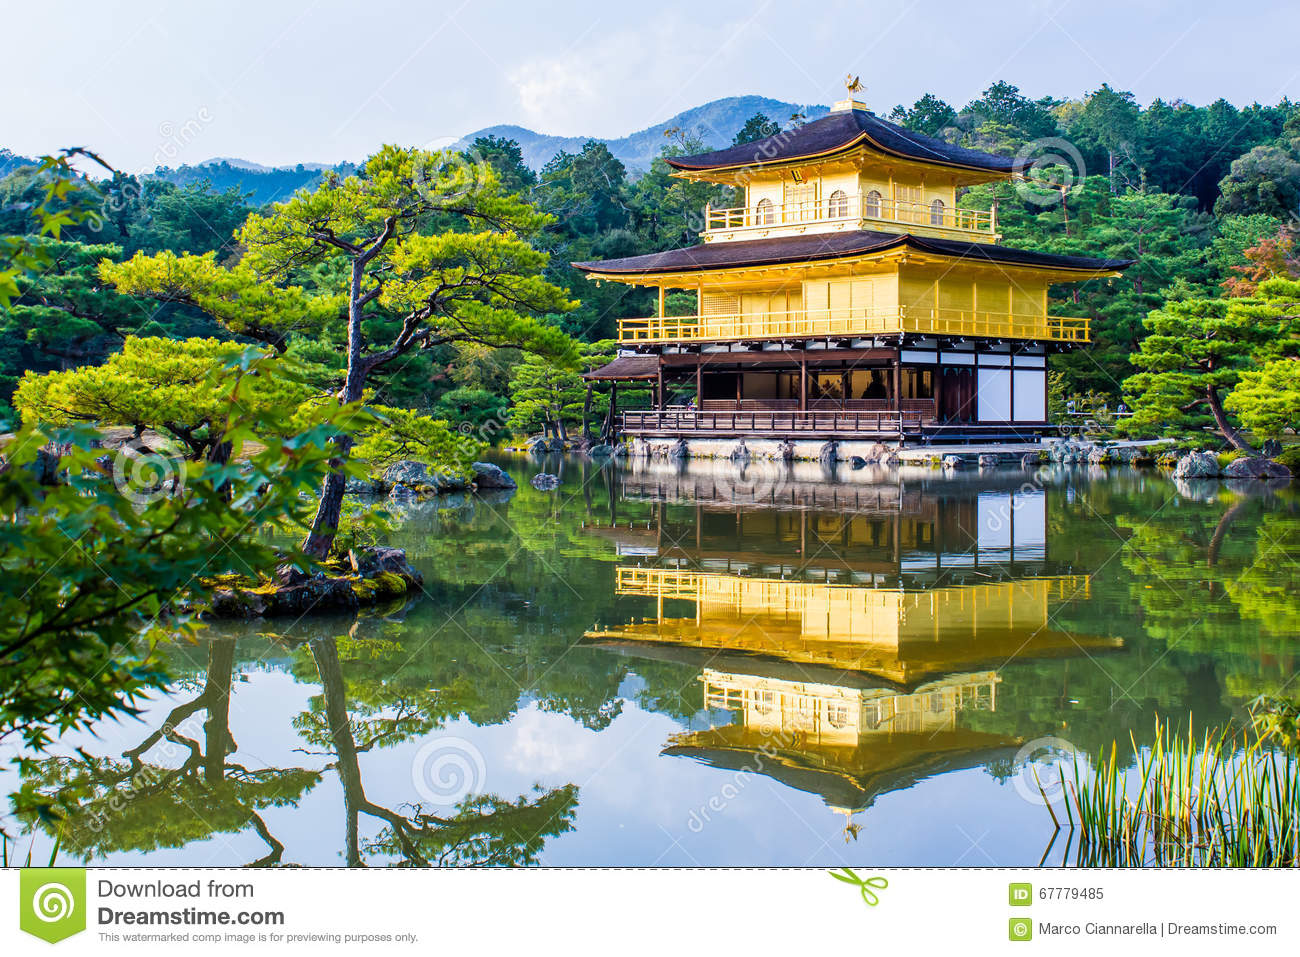 Kinkaku-ji, The Golden Pavilion in Kyoto, Japan